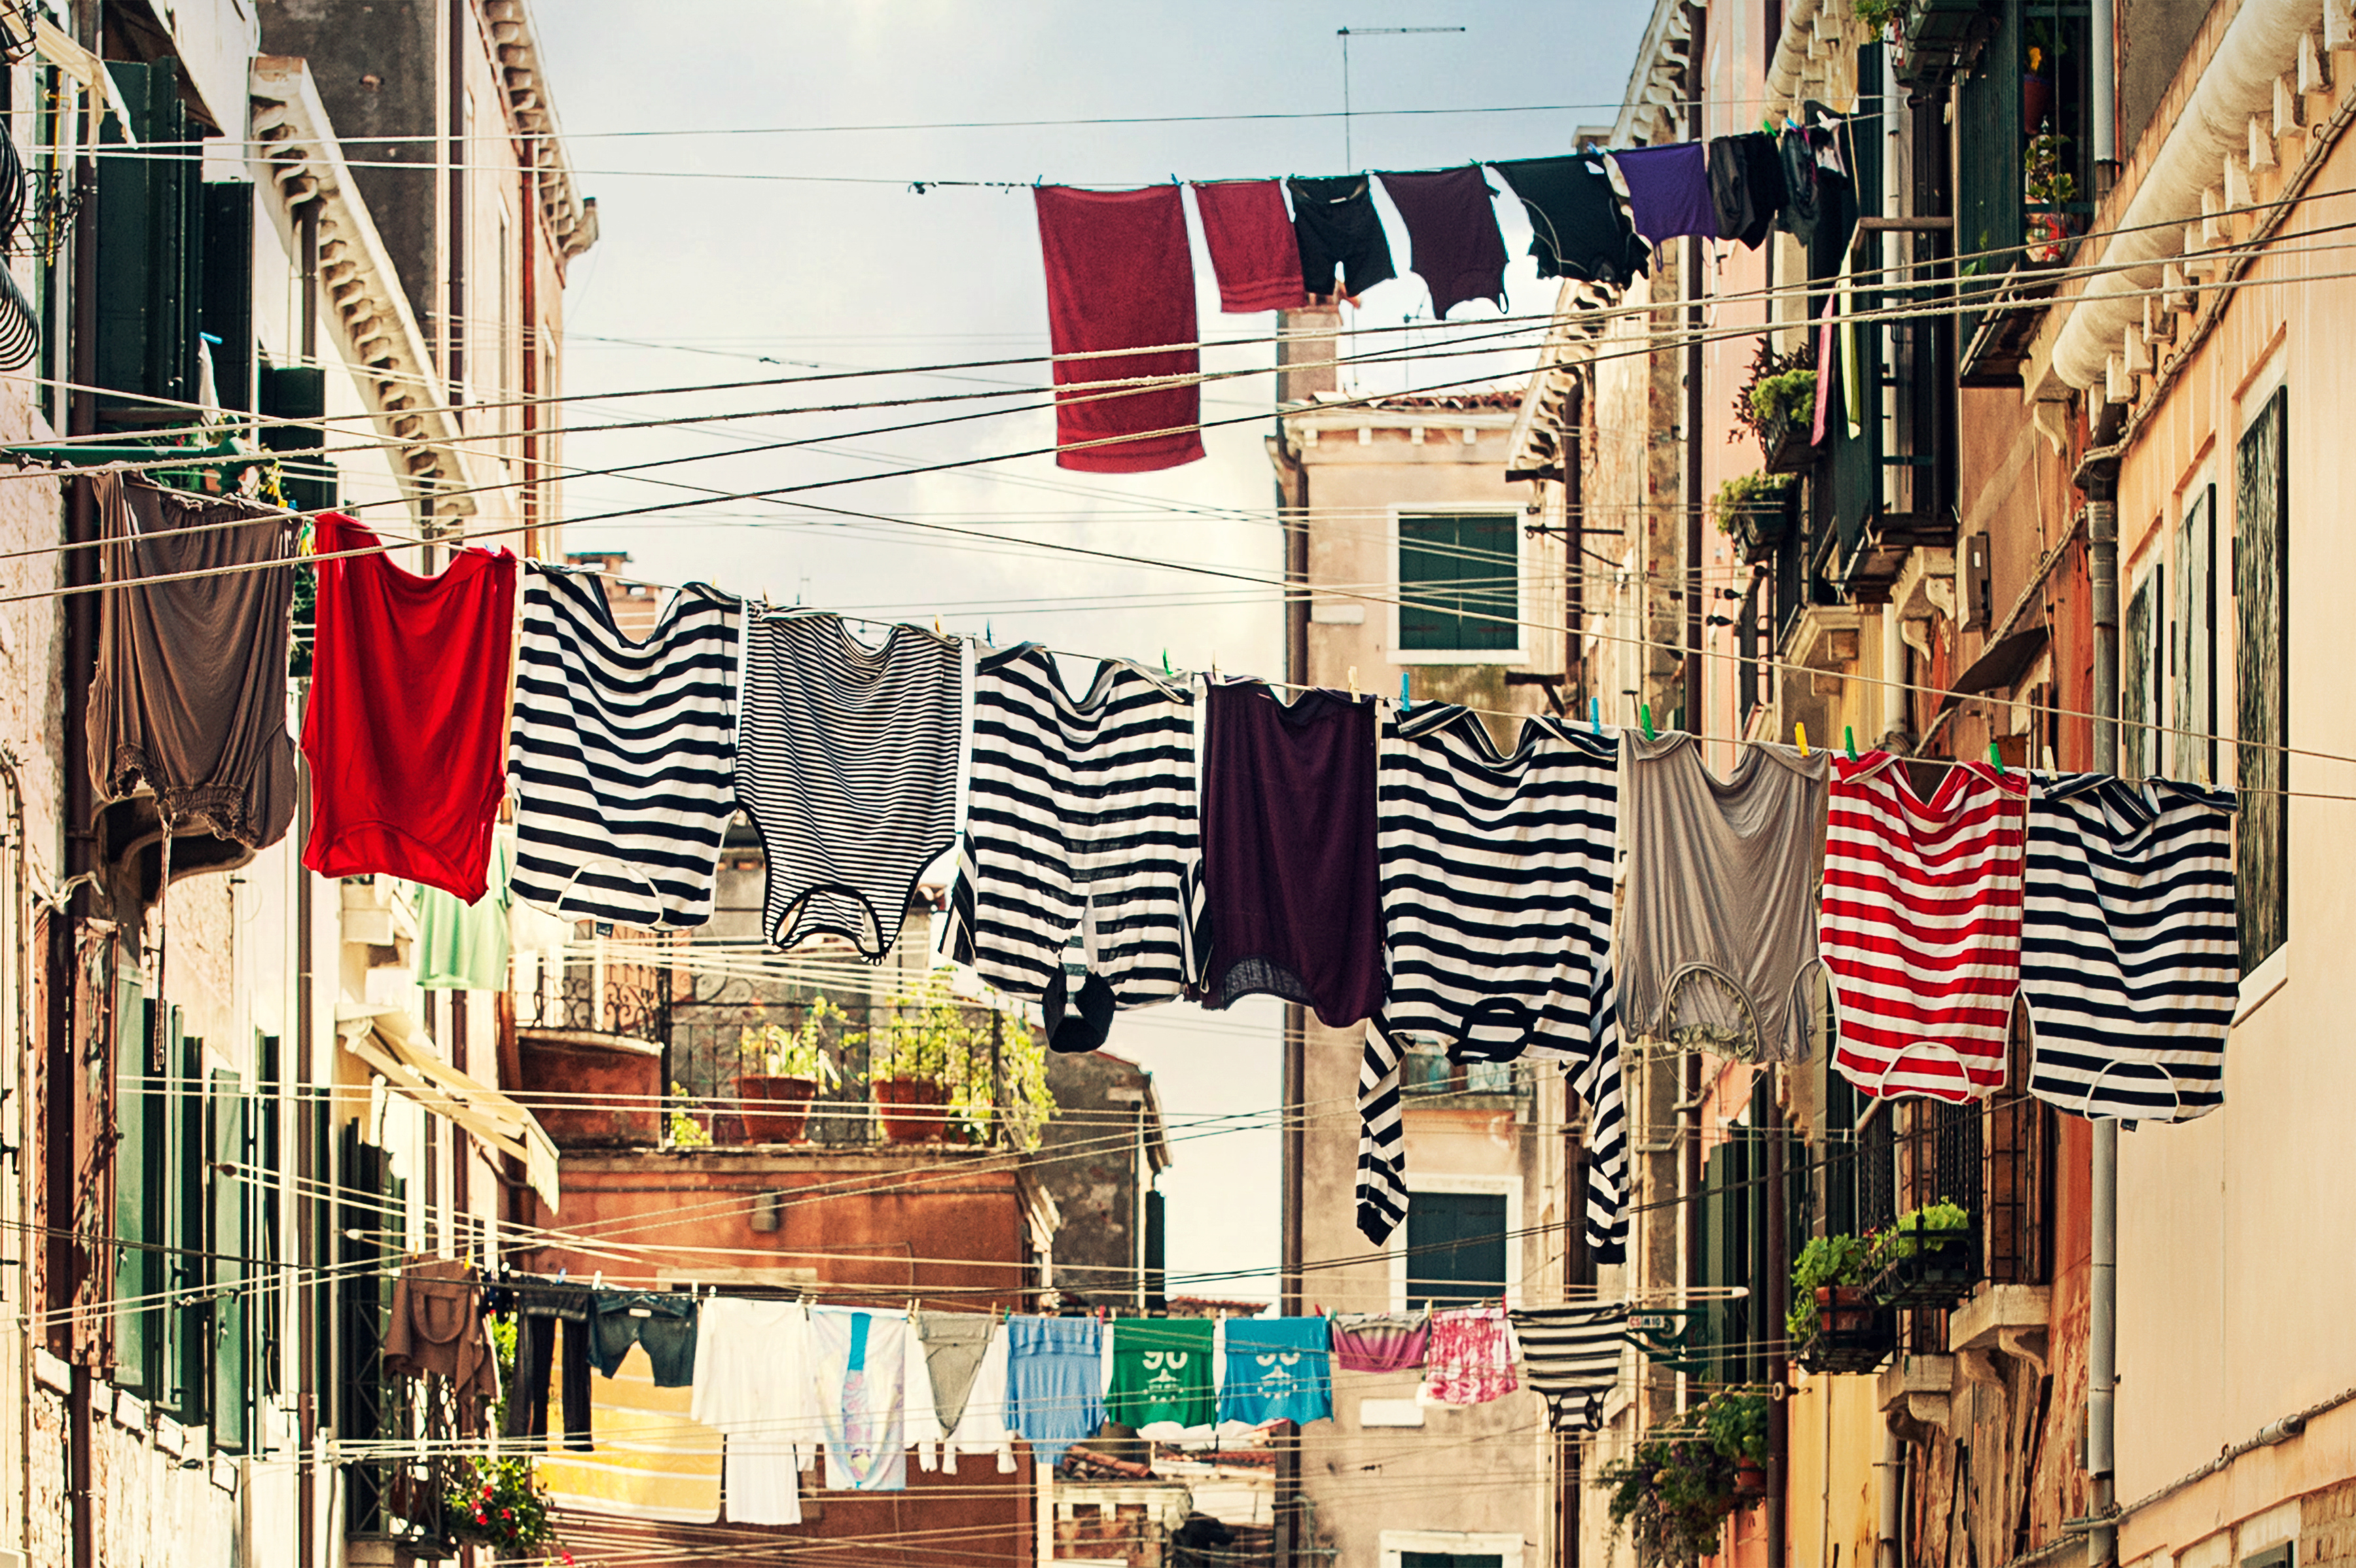 Striped Shirt Hanging on Gray Wire Between Beige Painted Wall Building during Daytime · Free ...